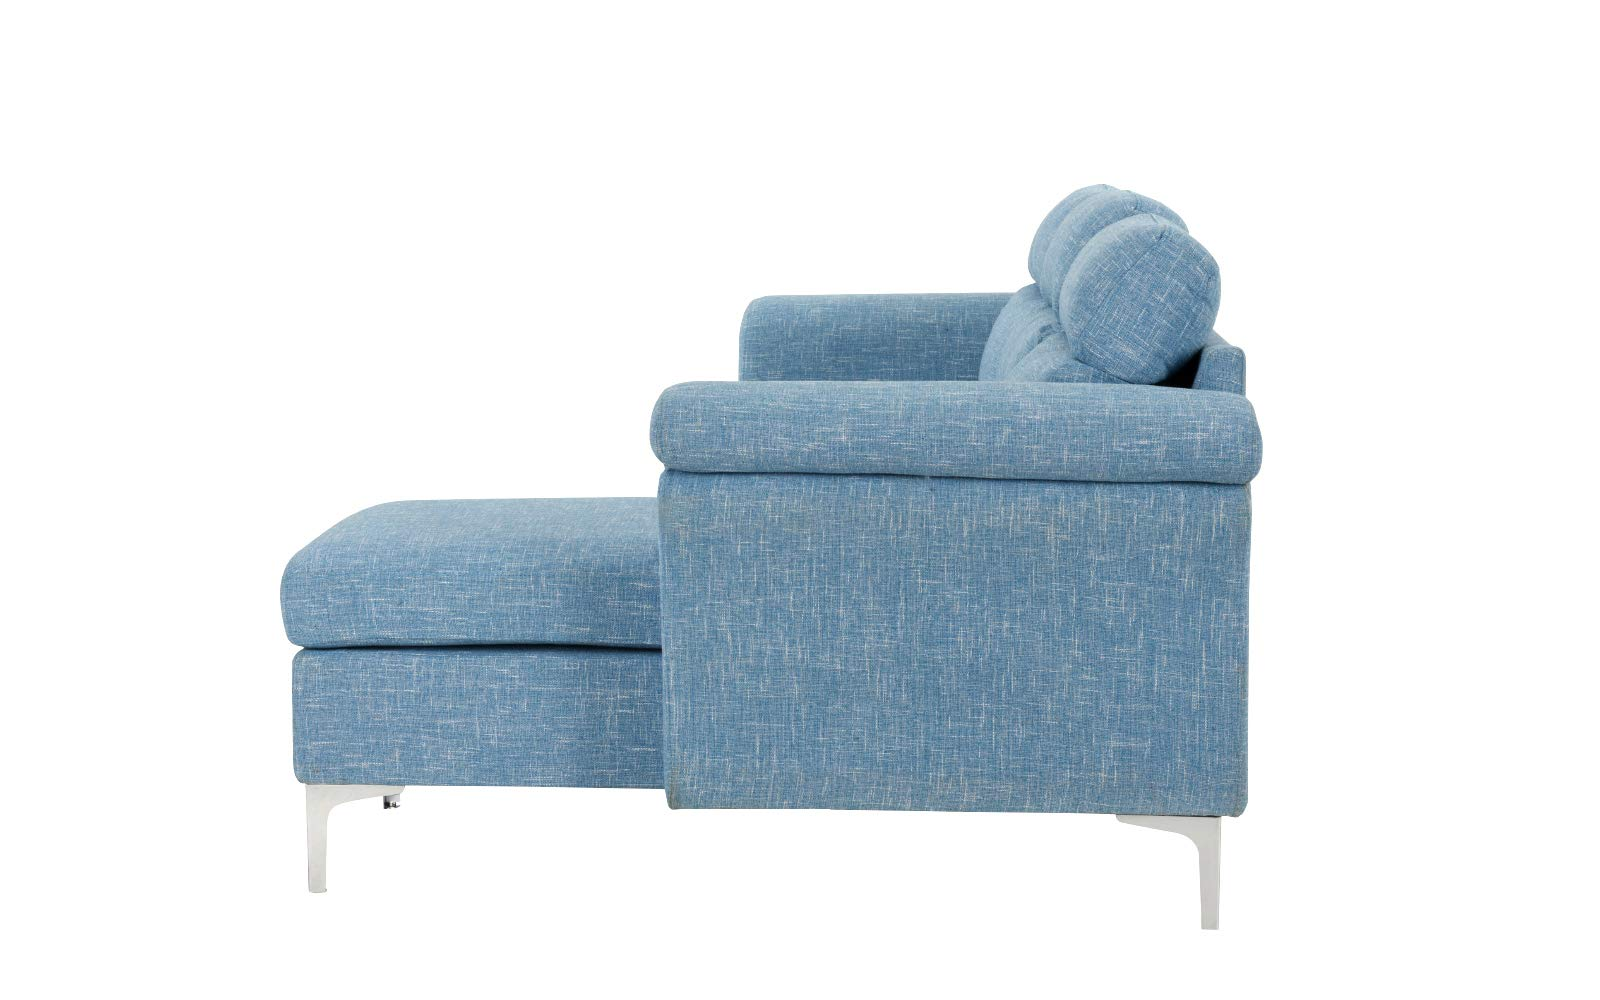 Casa Andrea Milano Modern Linen Fabric Sectional Sofa - Small Space Couch (Light Blue) - This small space sectional sofa features an exquisite modern design with wrap around armrest cushions for extra comfort. Our modern sectional sofa comes wrapped in carefully selected linen fabric upholstery. This modern sectional sofa has been specifically designed to fit into small spaces while still remaining spacious Our specially designed fabric provides the ultimate look while maintaining durability. - sofas-couches, living-room-furniture, living-room - 61AzhsVskpL -